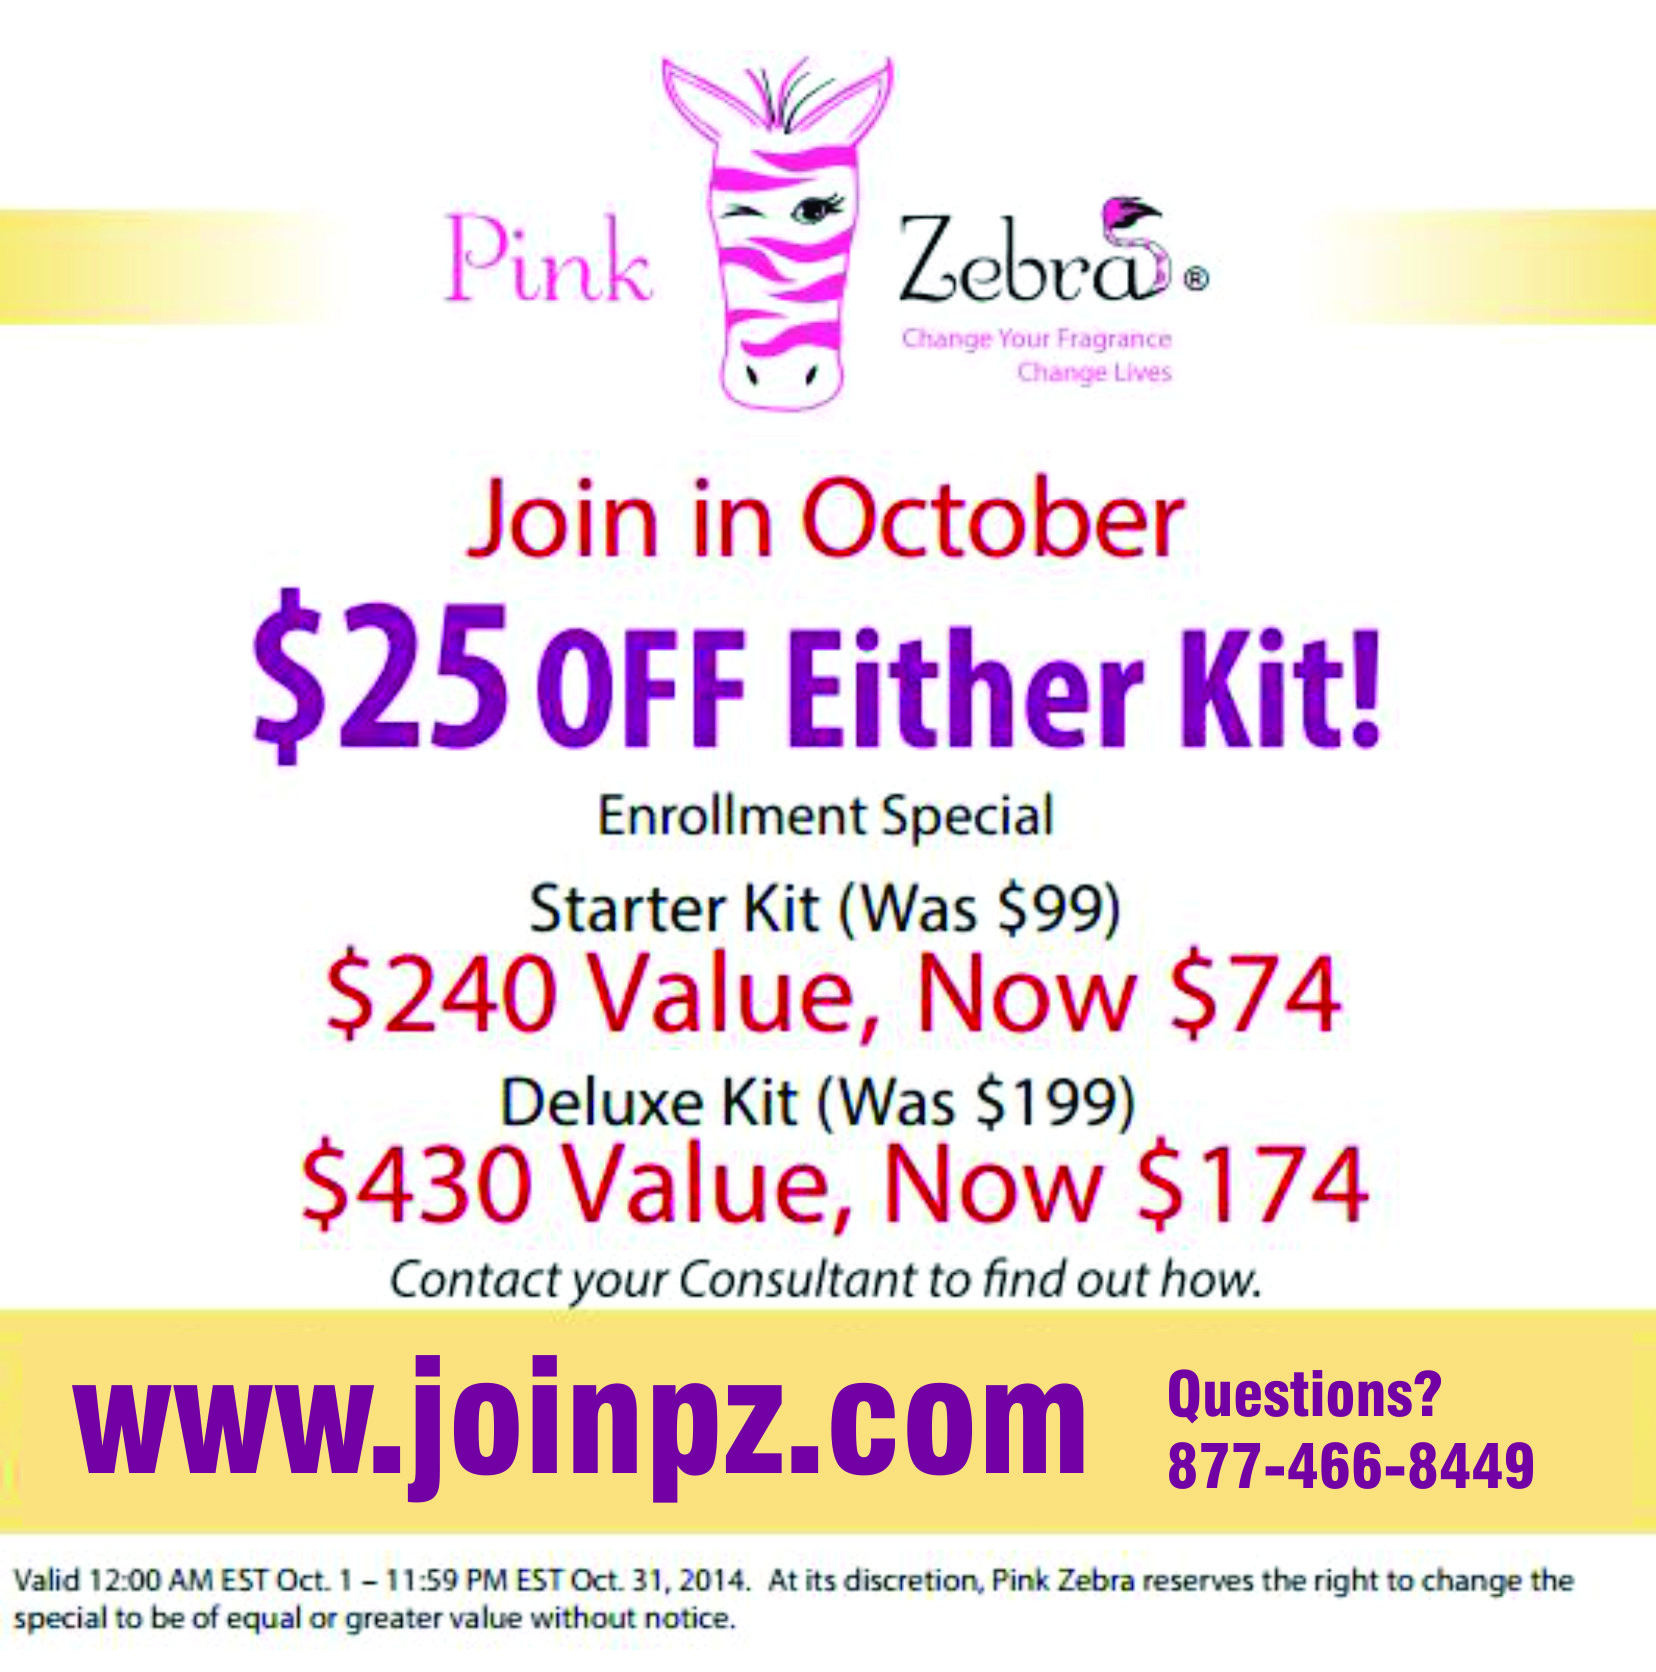 Join Pink Zebra Become a Pink Zebra Consultant